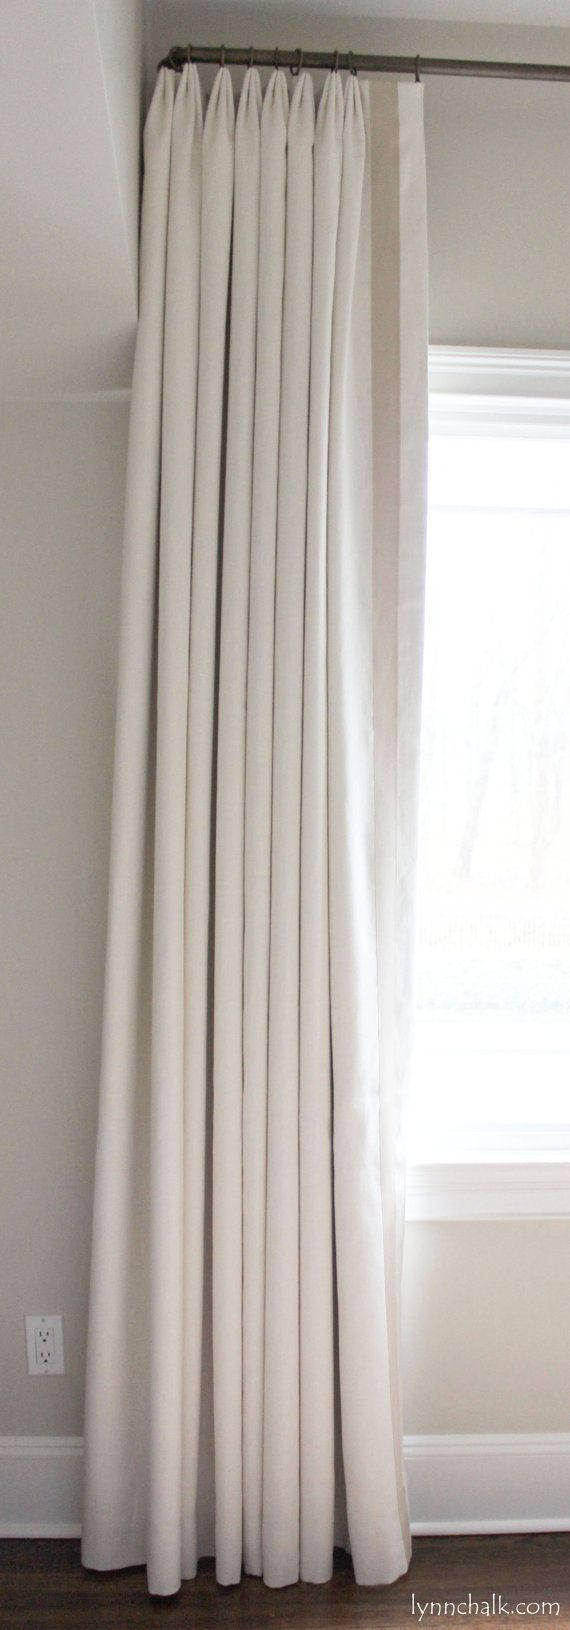 drapes pinch sheers handballtunisie pleat for l patio pleated rapturous u org door